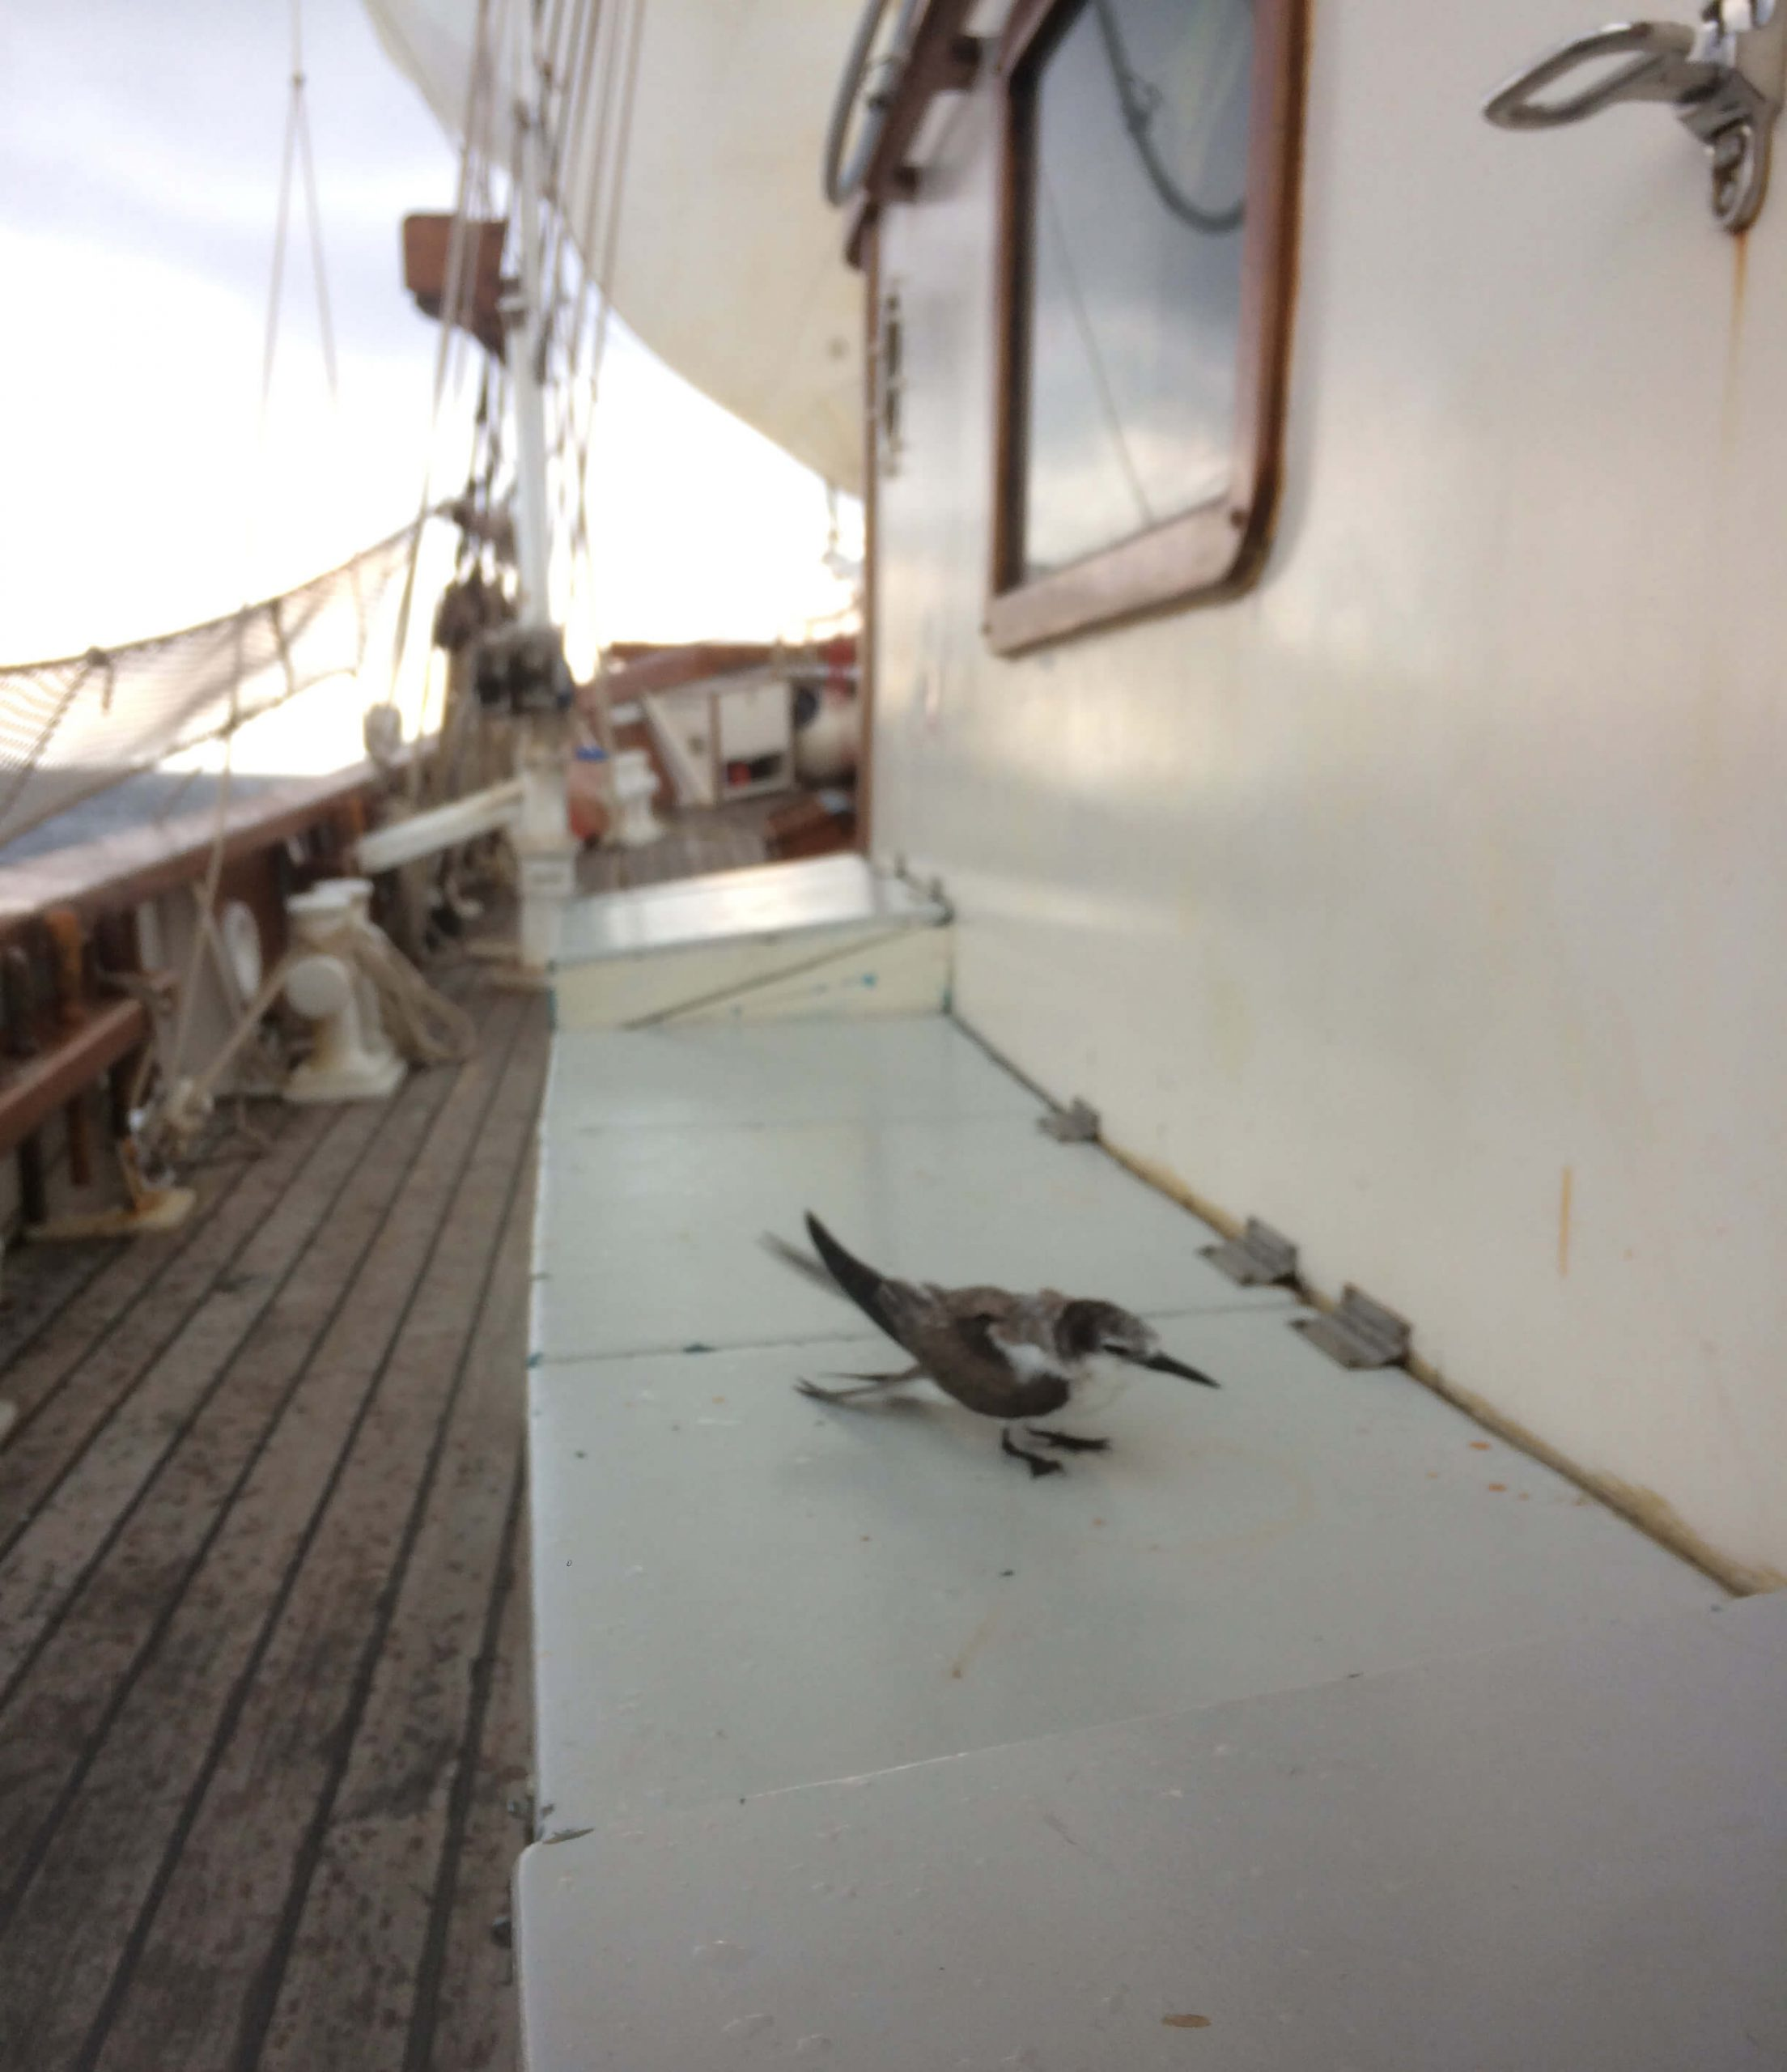 Sailing on the Bismarck Sea, a dying bird